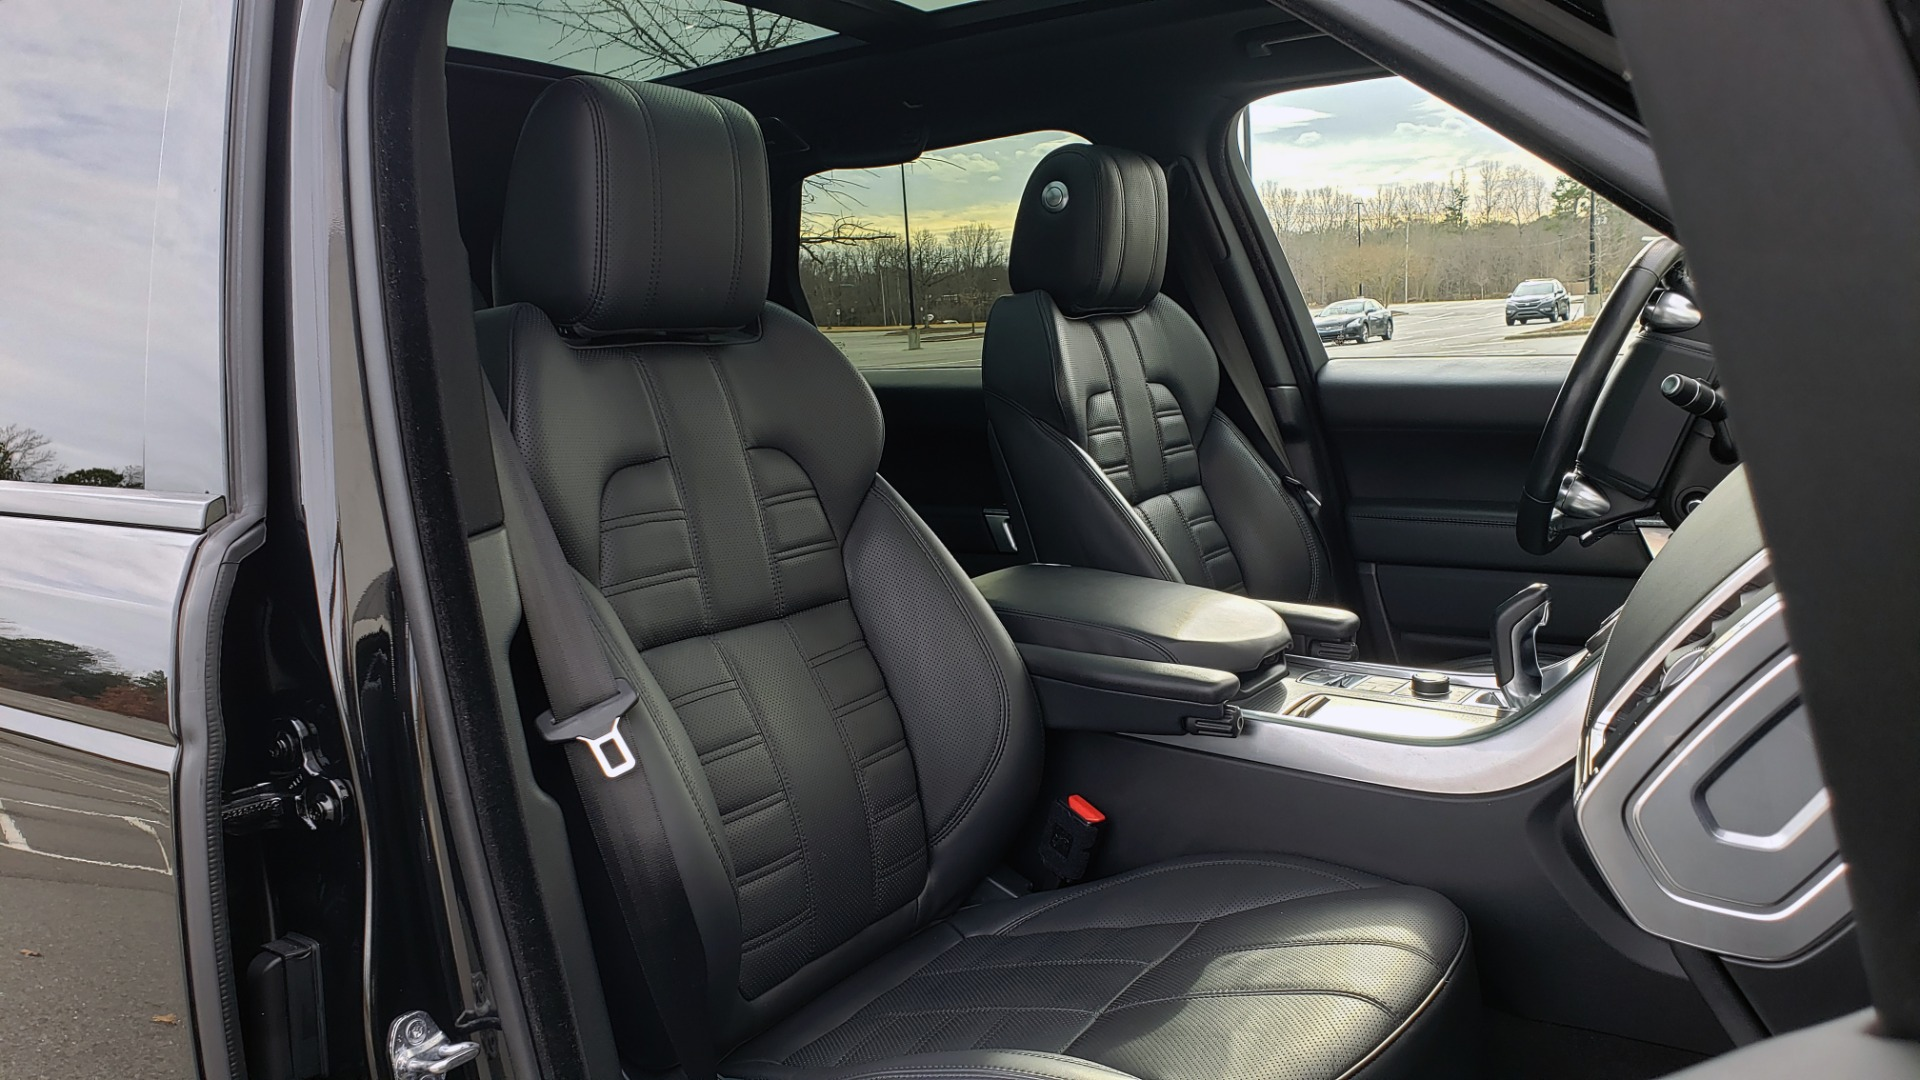 Used 2017 Land Rover RANGE ROVER SPORT HSE DYNAMIC / SC V6 / NAV / MERIDIAN / PANO-ROOF / REARVIEW for sale Sold at Formula Imports in Charlotte NC 28227 74